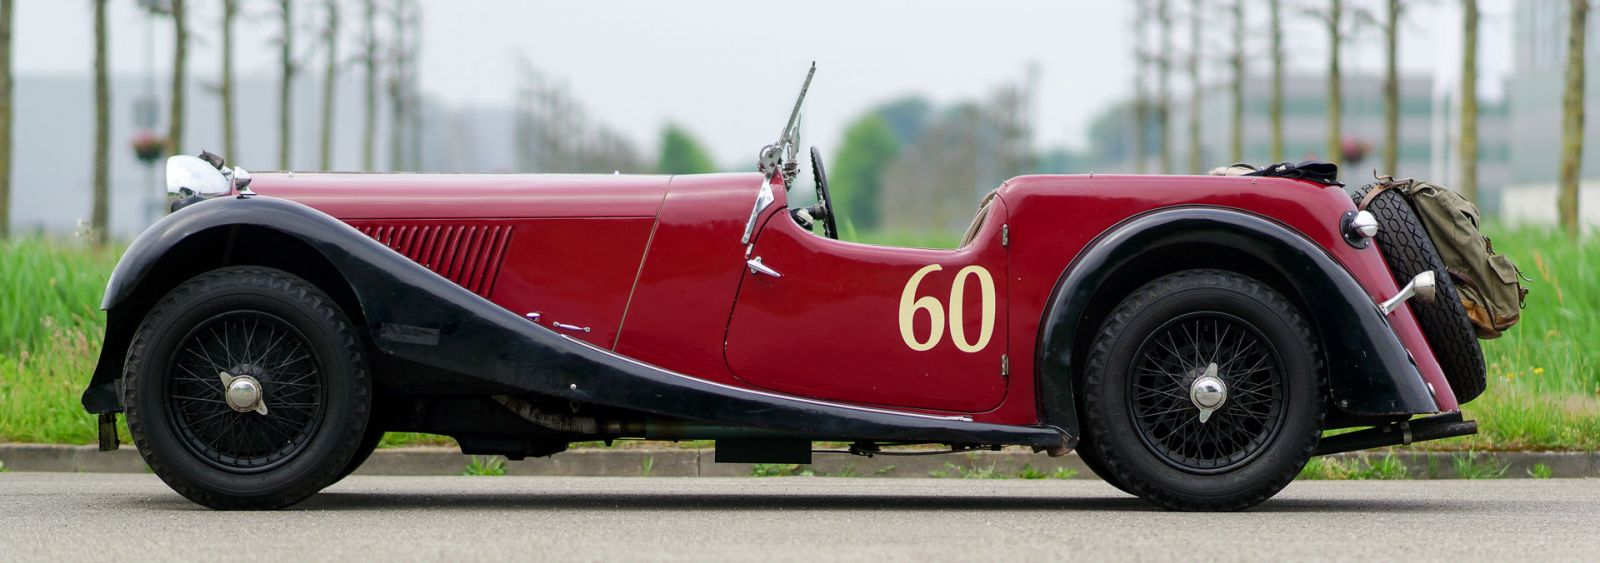 Herbert Engineering Nelson V8 special, 1931